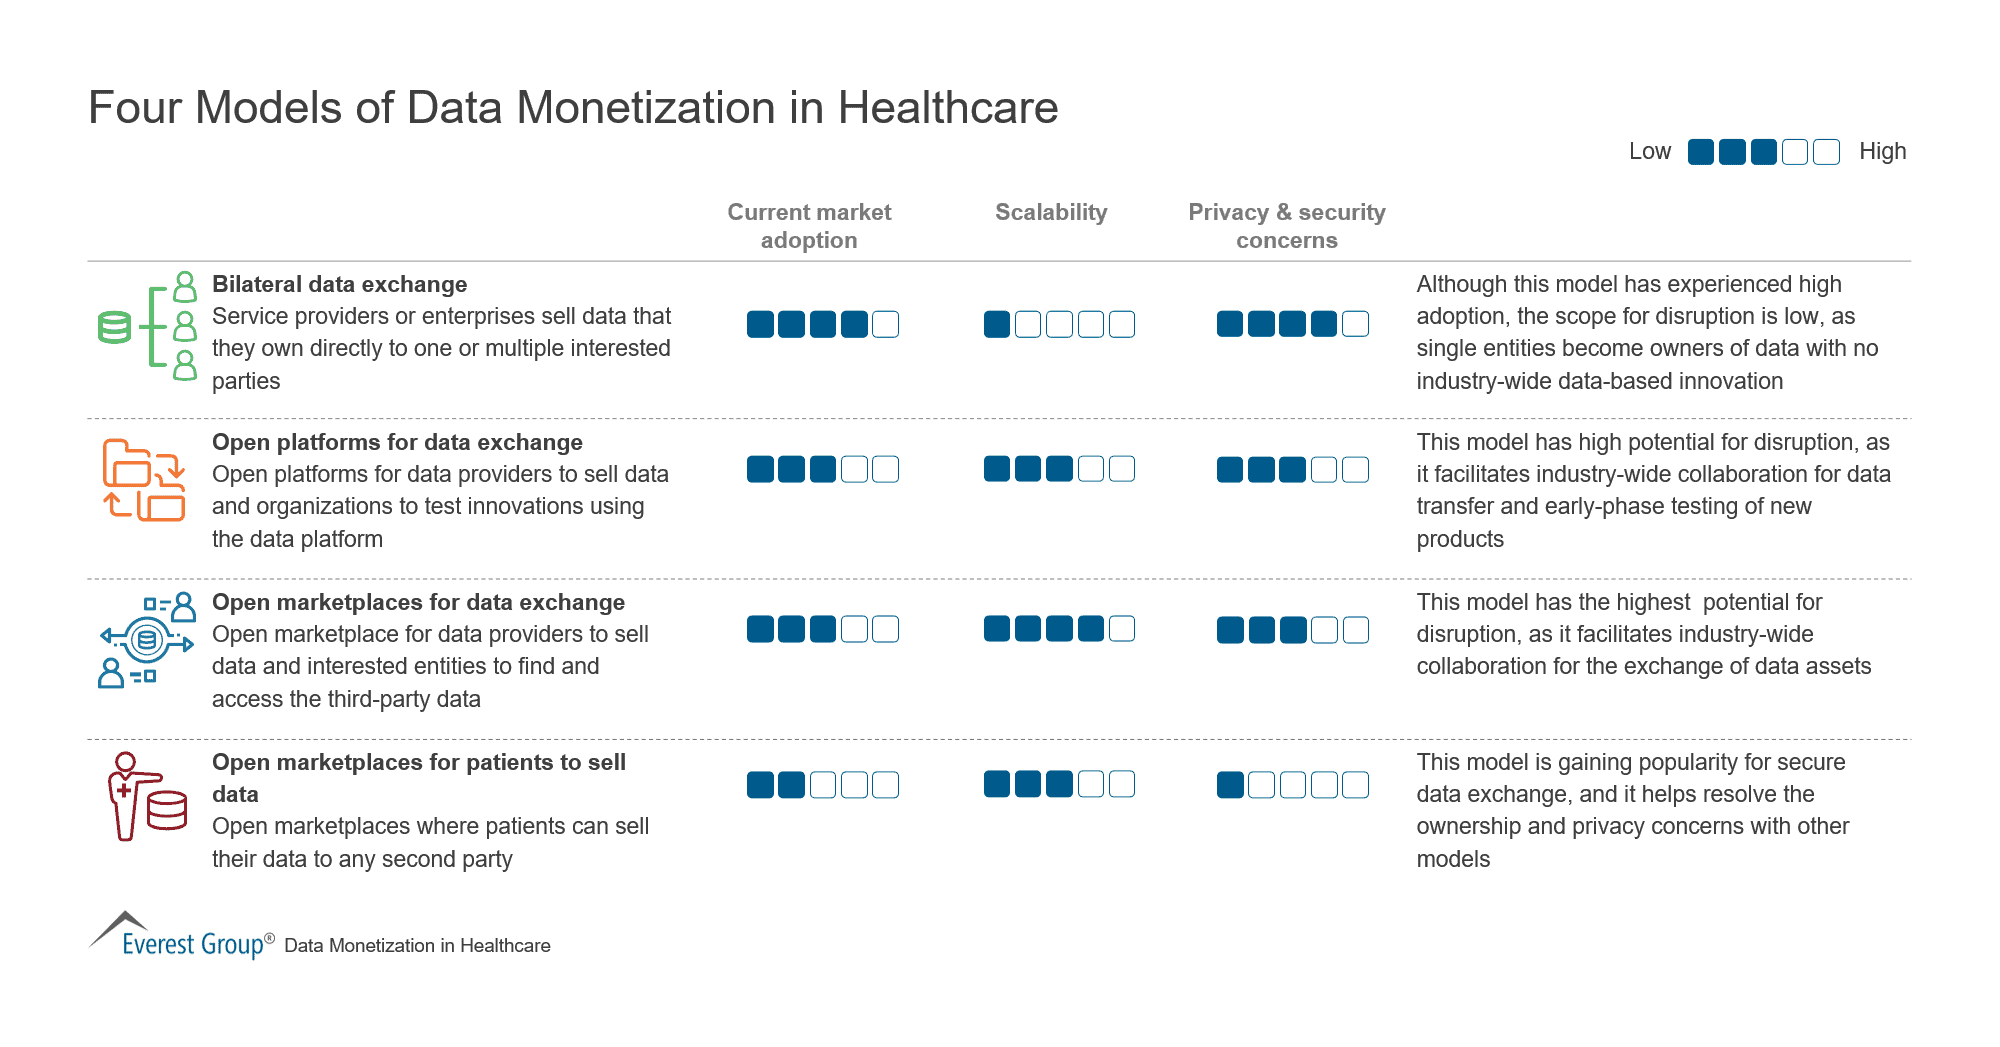 Four Models of Data Monetization in Healthcare